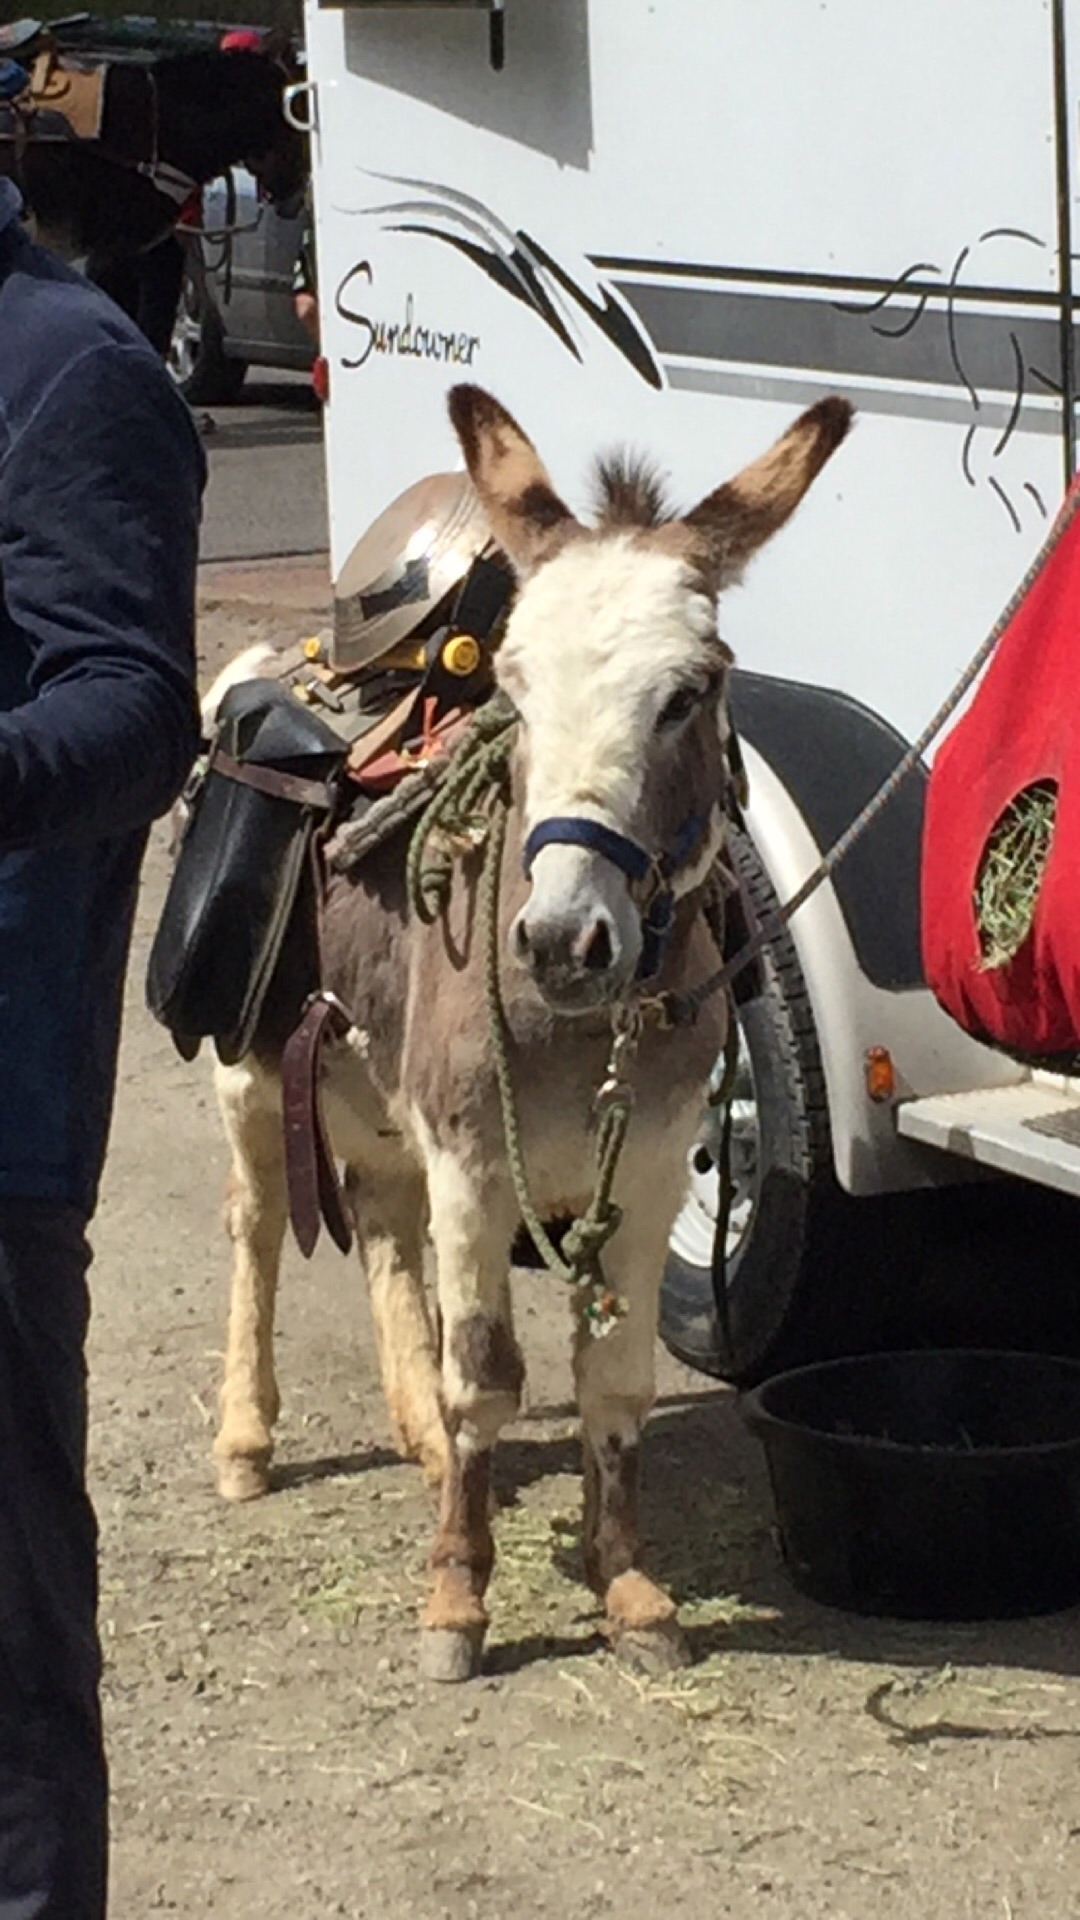 Burro is the Spanish word for donkey